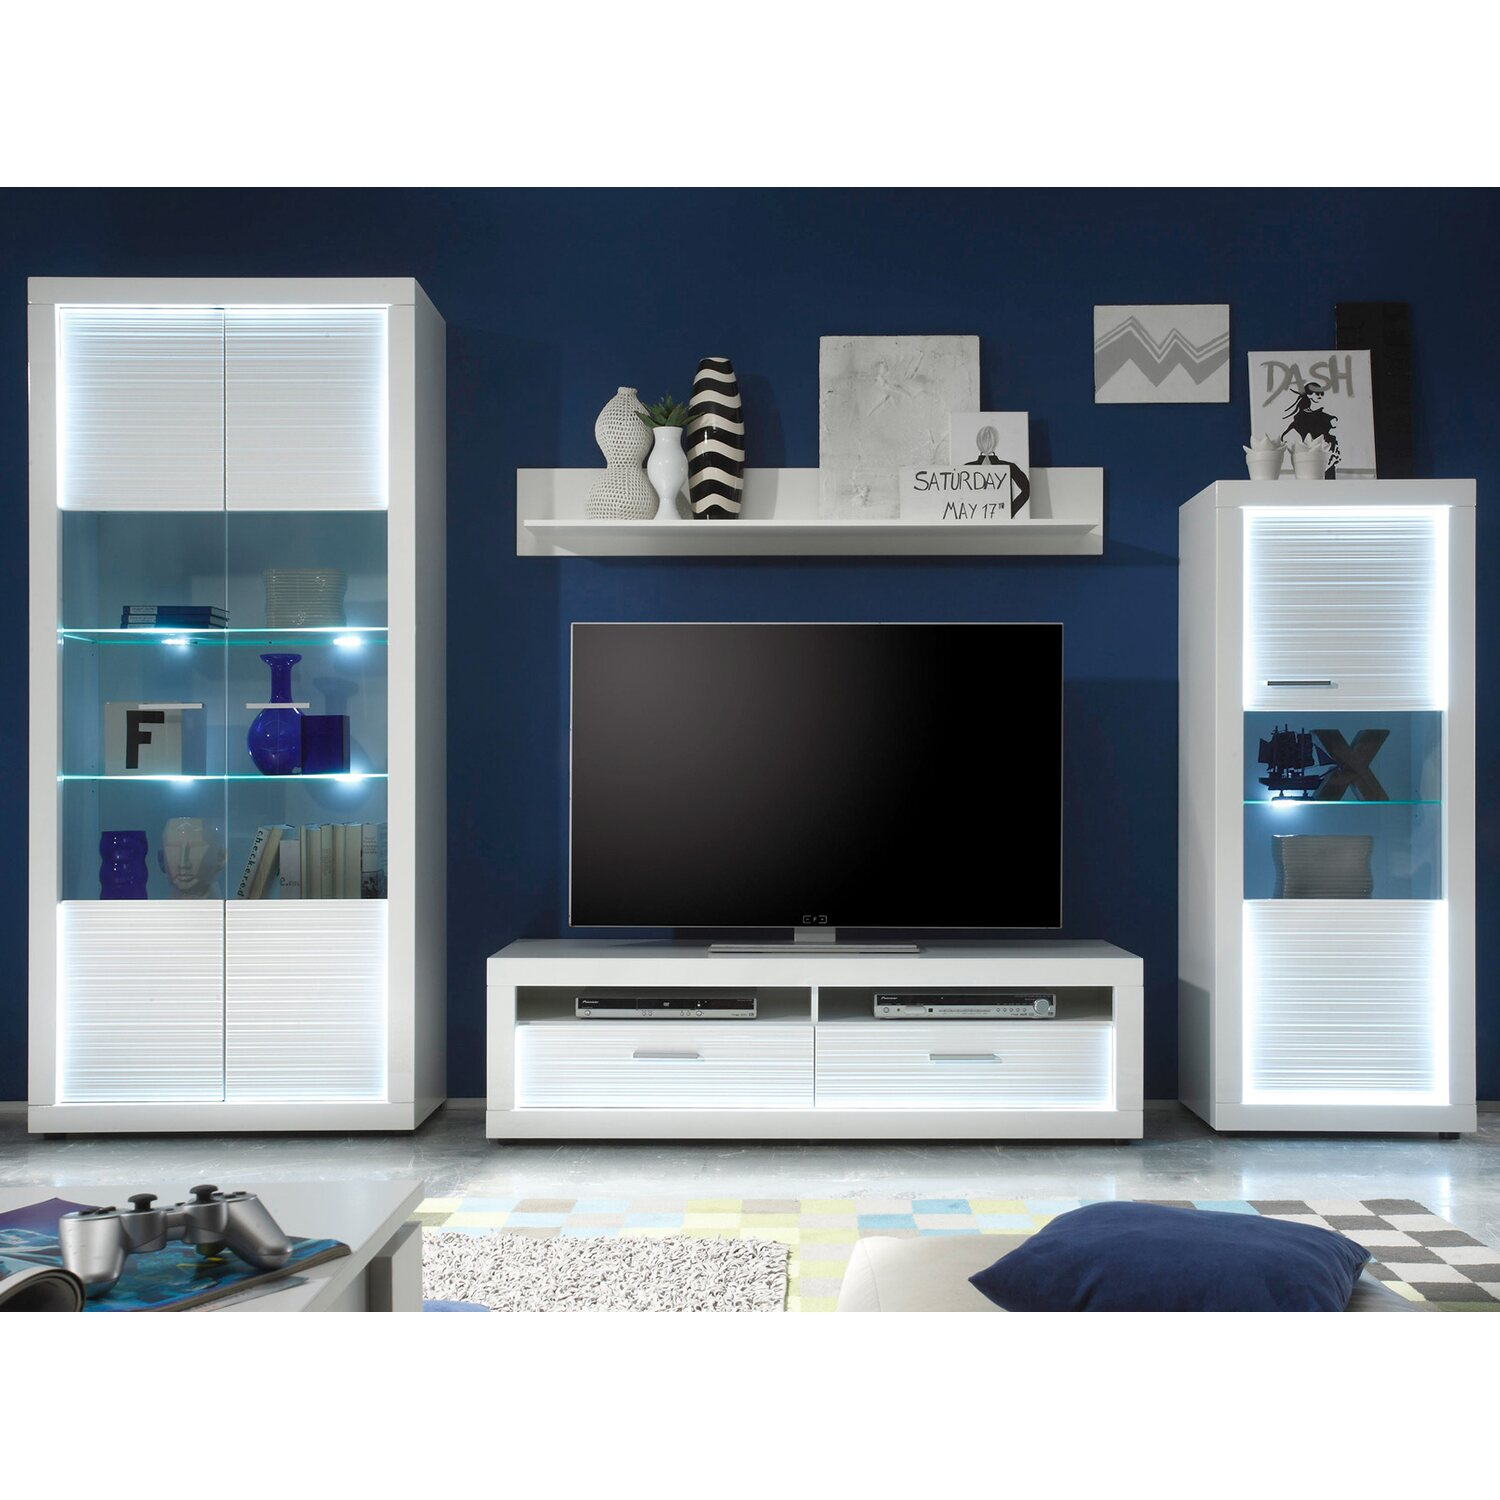 tv lowboard inkl beleuchtung starlight 150 cm x 44 cm x 41 cm wei eek a a kaufen bei obi. Black Bedroom Furniture Sets. Home Design Ideas